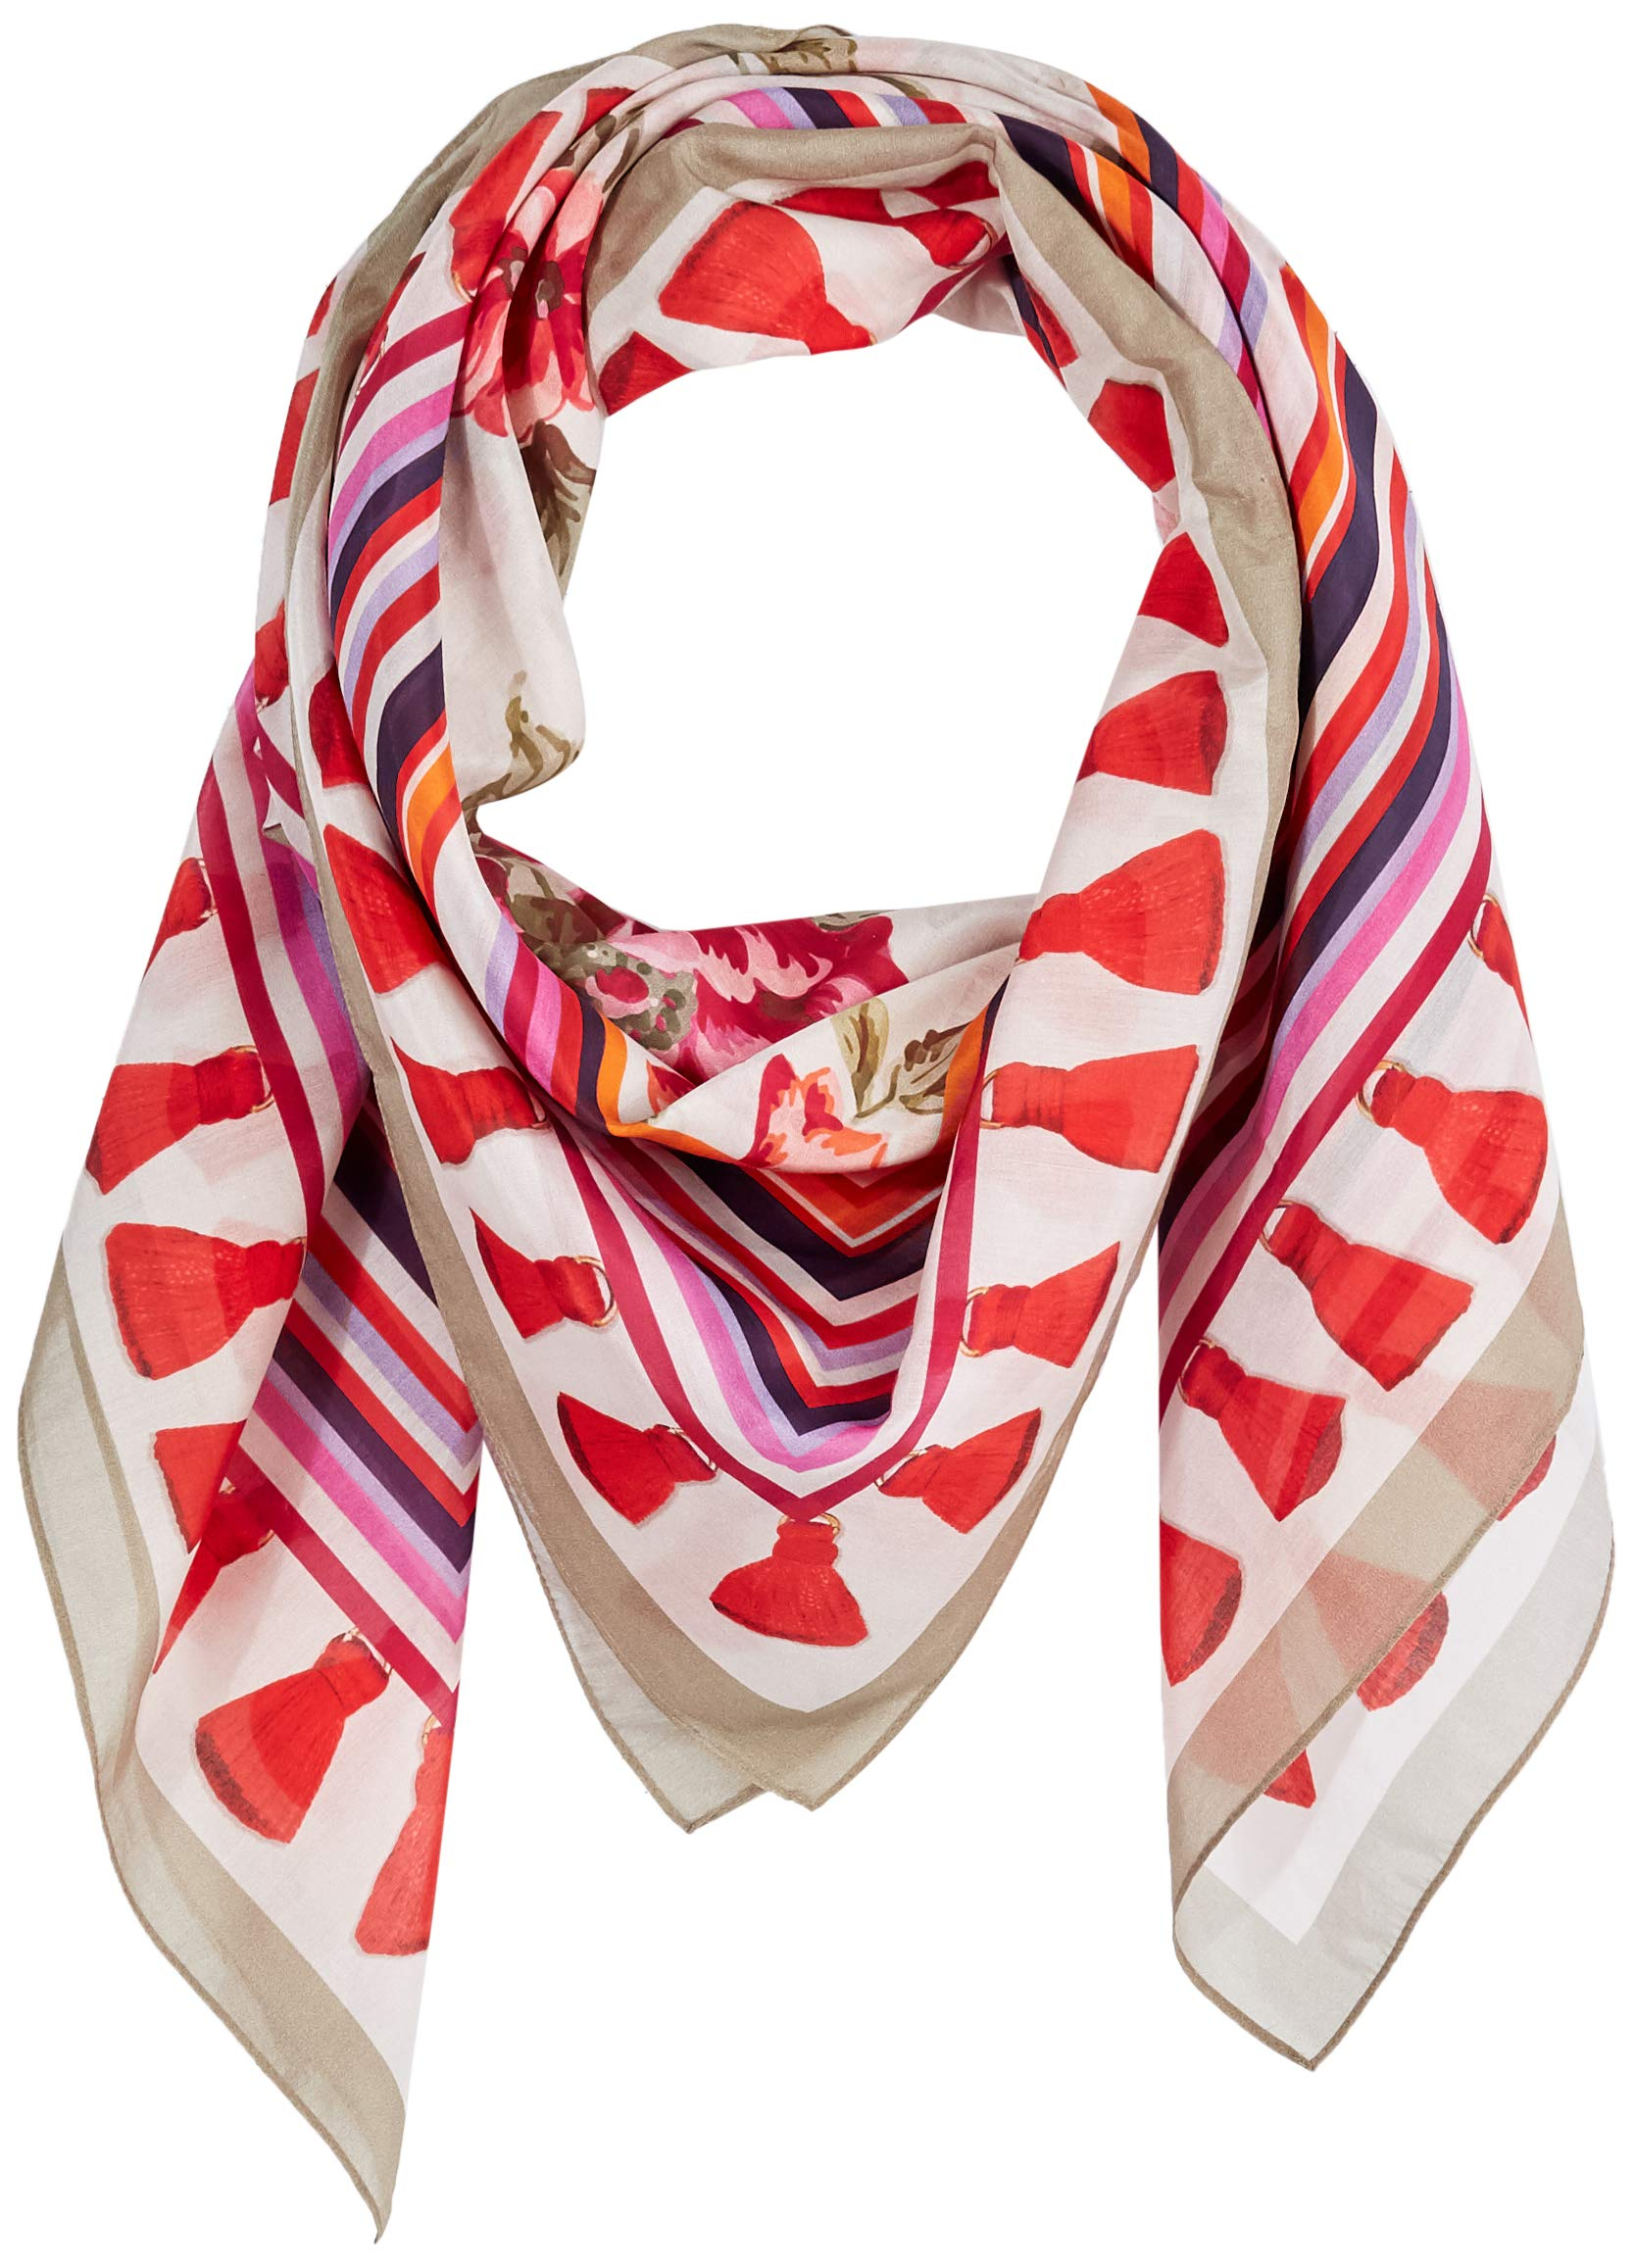 Lake Como SCARVES - Sanderson + Navy Nappino Scarves - Doll Pink by LAKE COMO SCARVES